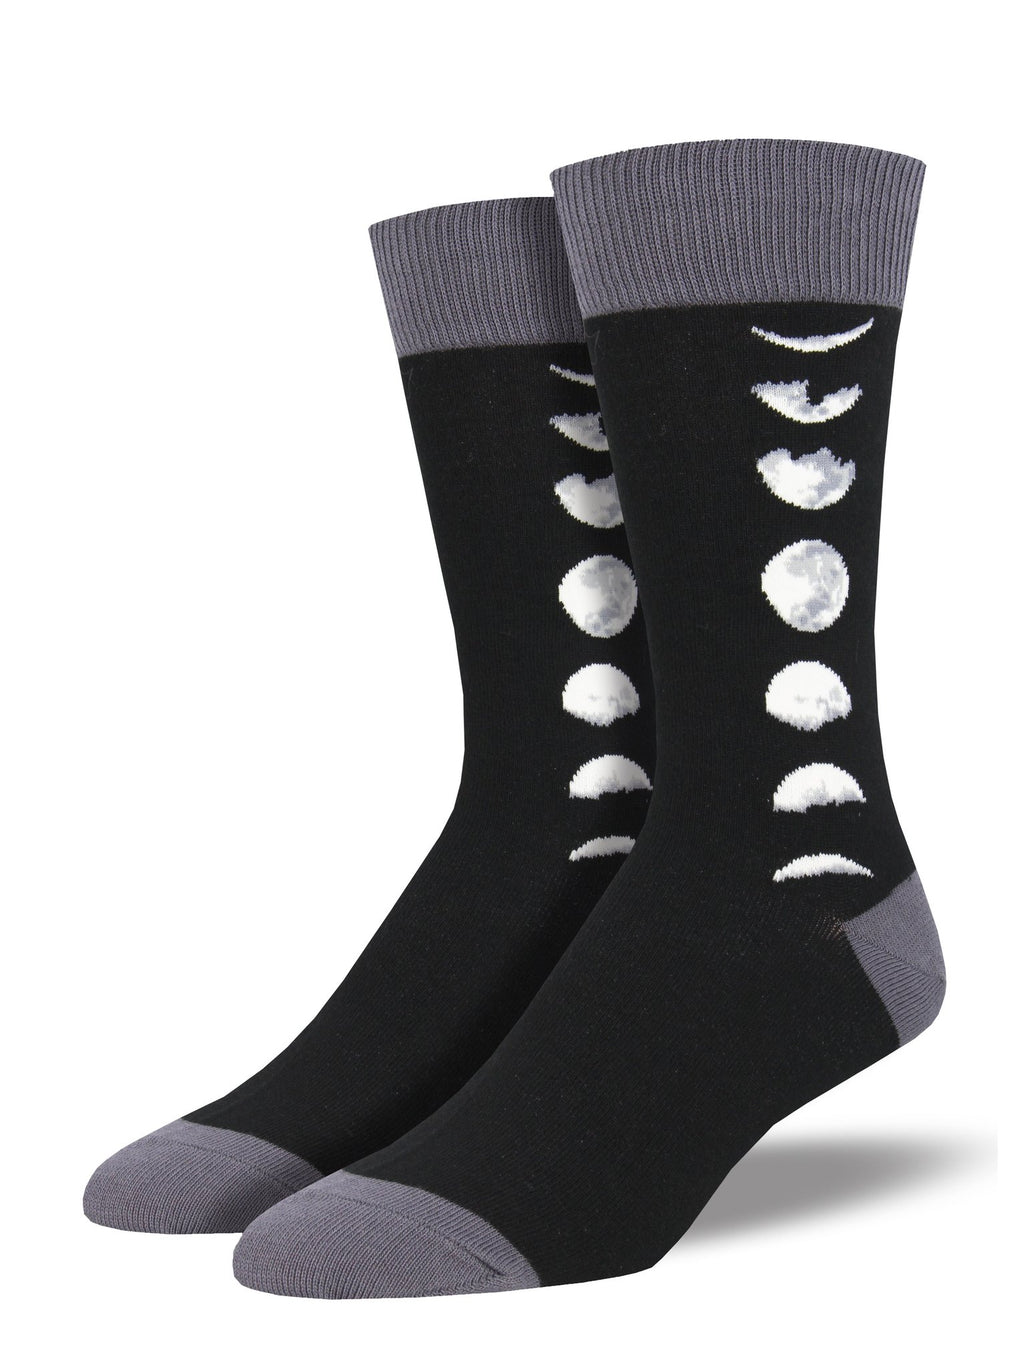 Just A Phase Black Men's Socks